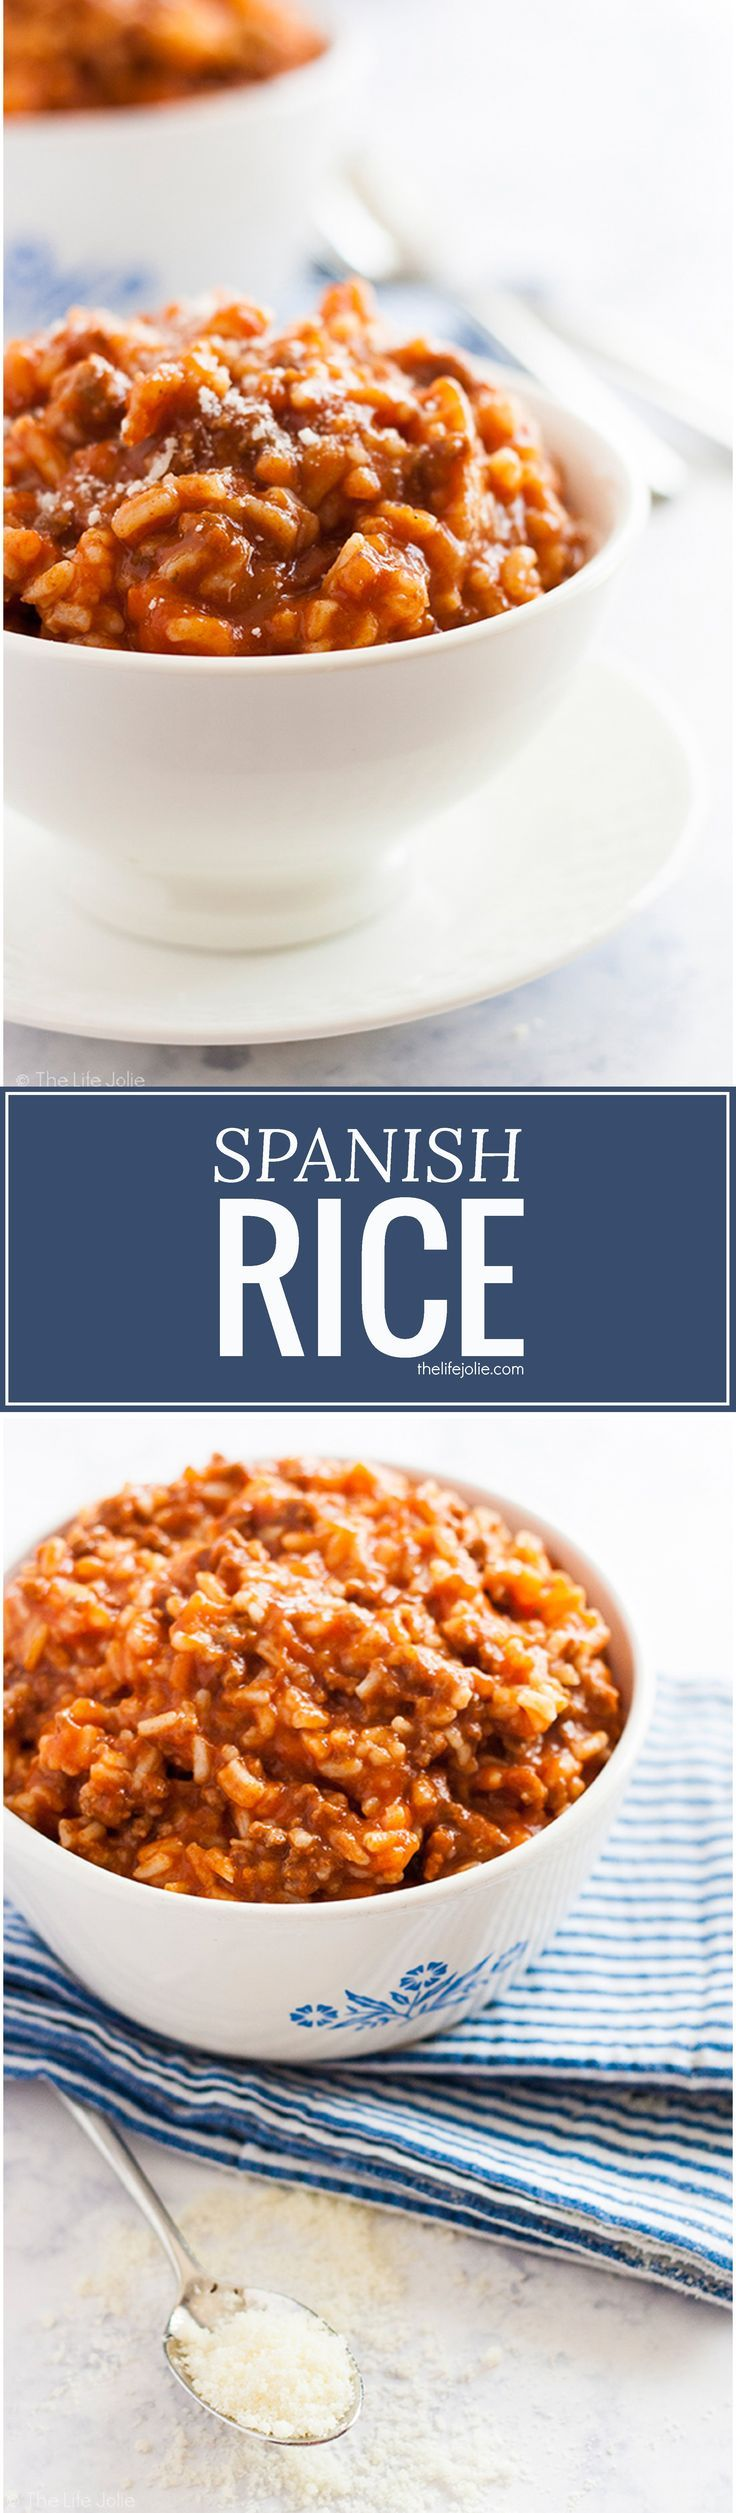 This easy Spanish Rice recipe has been a mainstay in my family for as long as I can remember. It's a really quick recipe which makes it perfect to make on a weeknight and is great for back-to-school. Delicious tomato sauce combines so well with ground bee